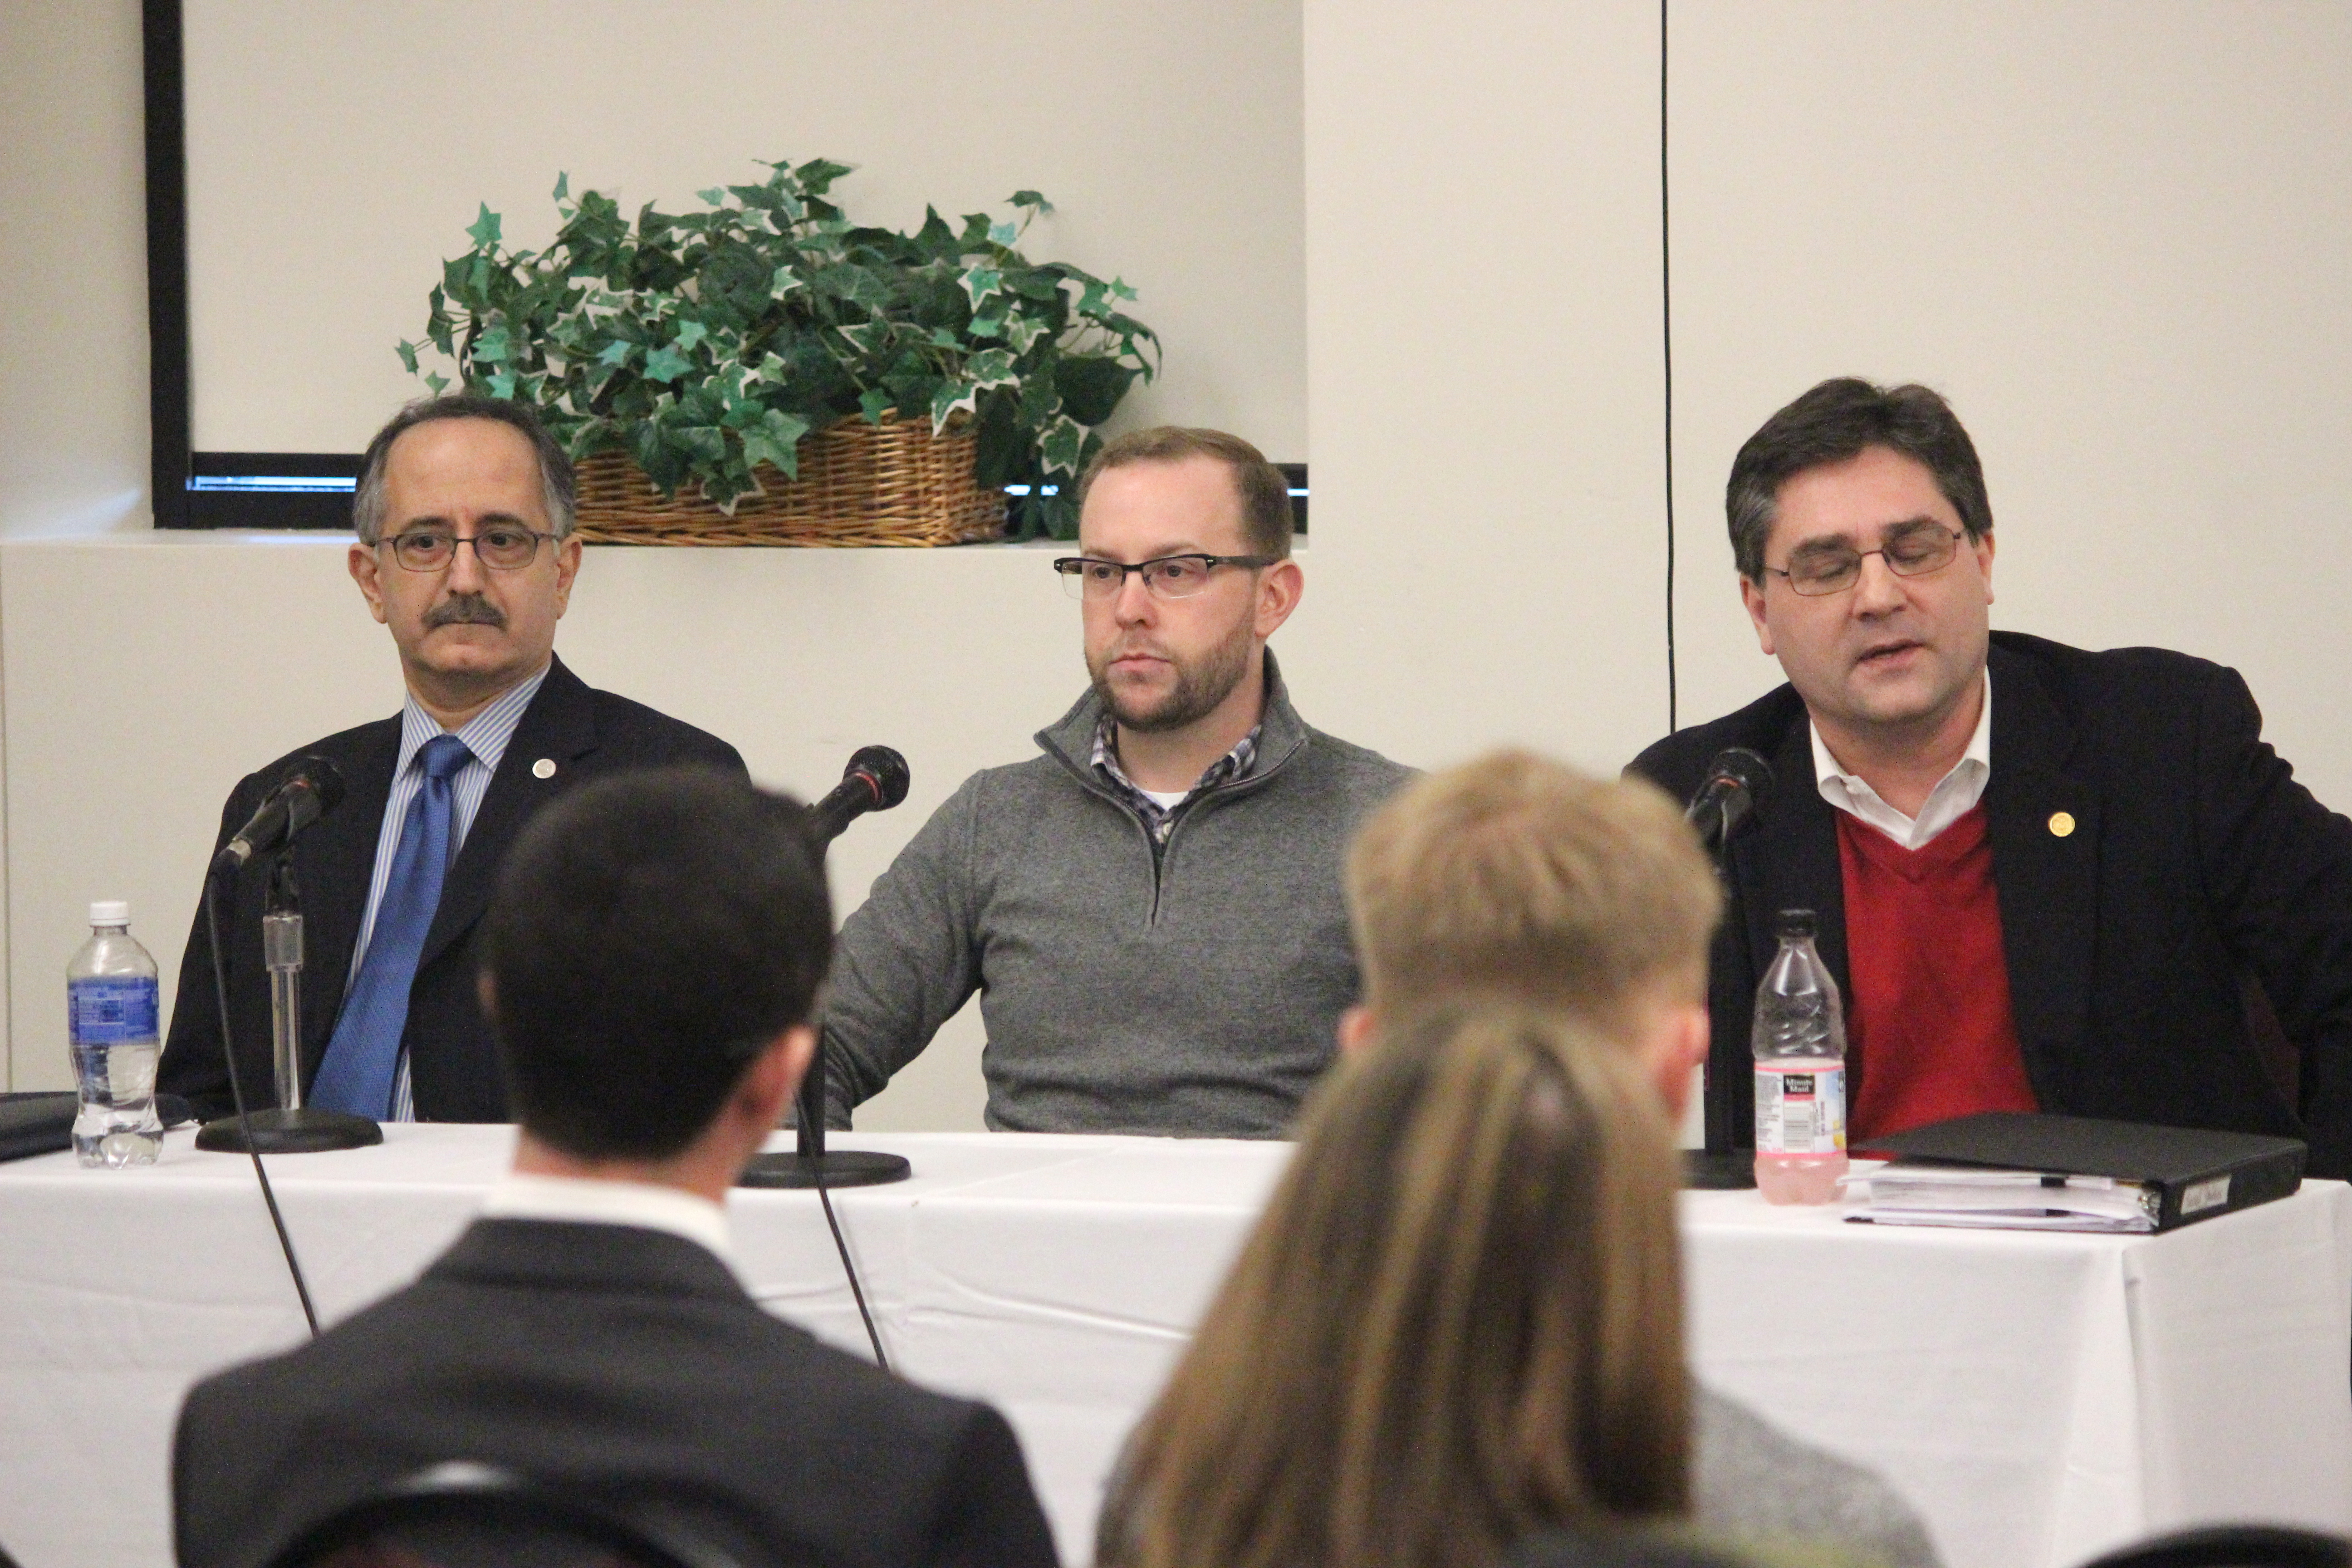 Round table discussion students - Michigan Politicians Discuss Higher Education At Roundtable